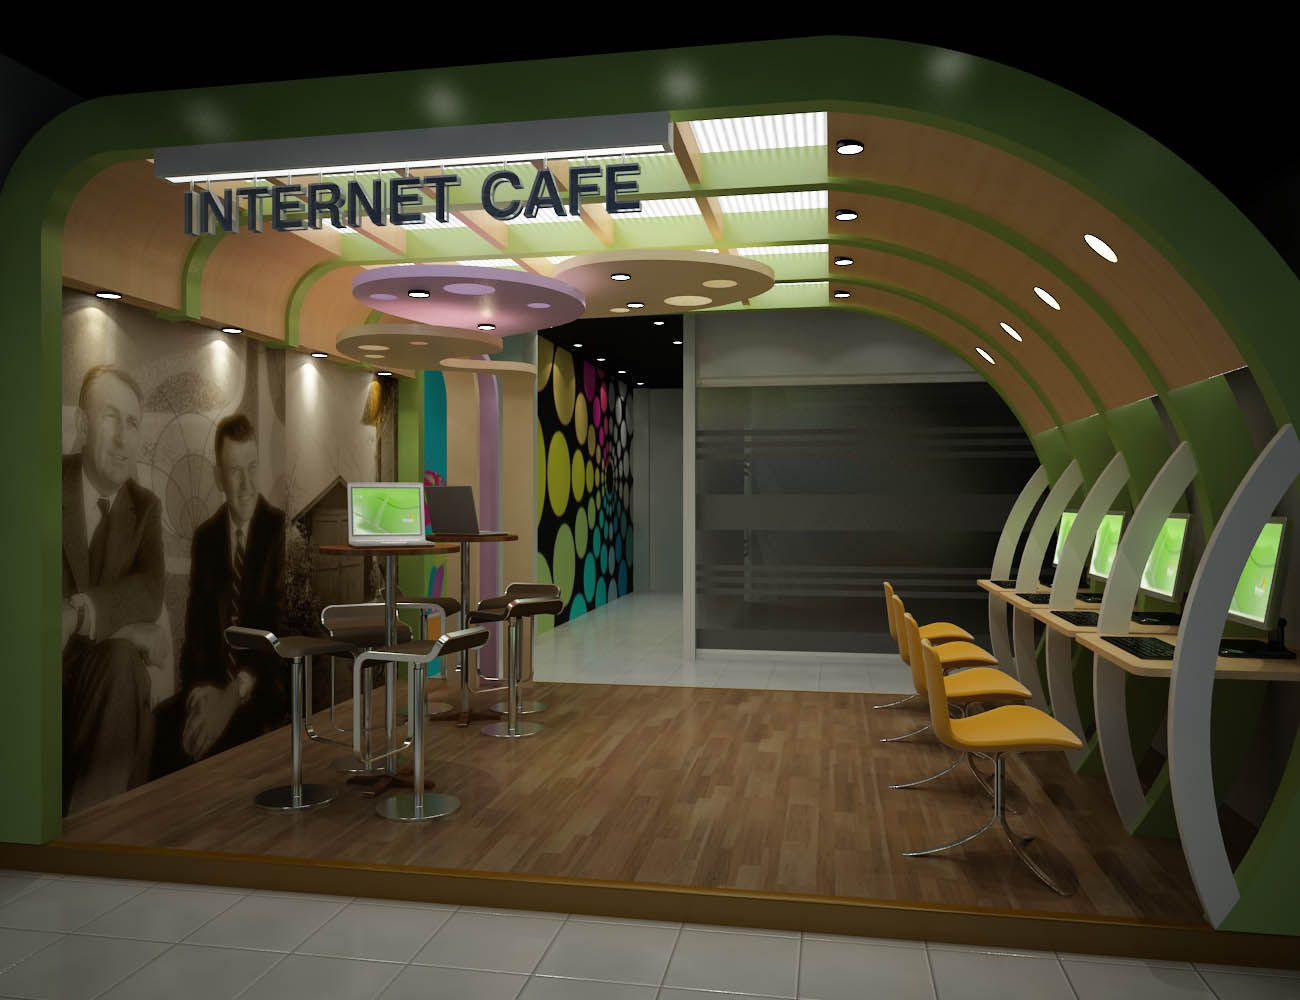 Internet Cafe Portfolio Work Liking The Curved Wall Con